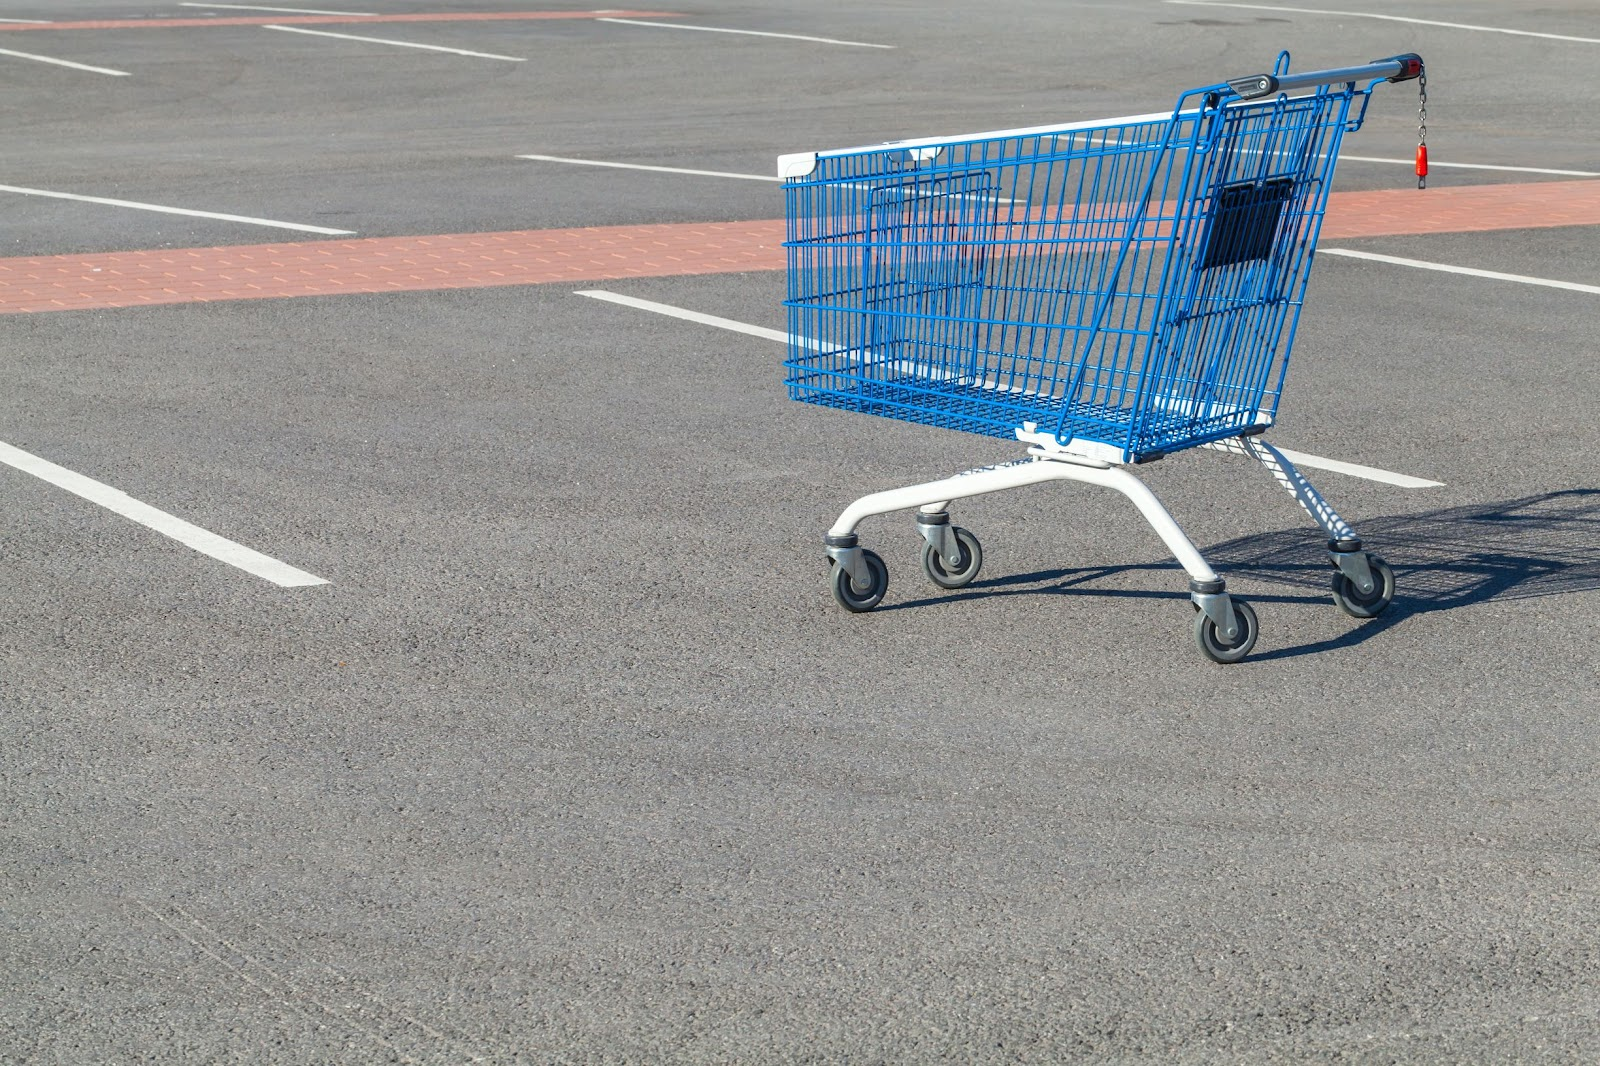 Abandoned shopping cart in an empty parking lot symbolizing potential e-commerce purchases